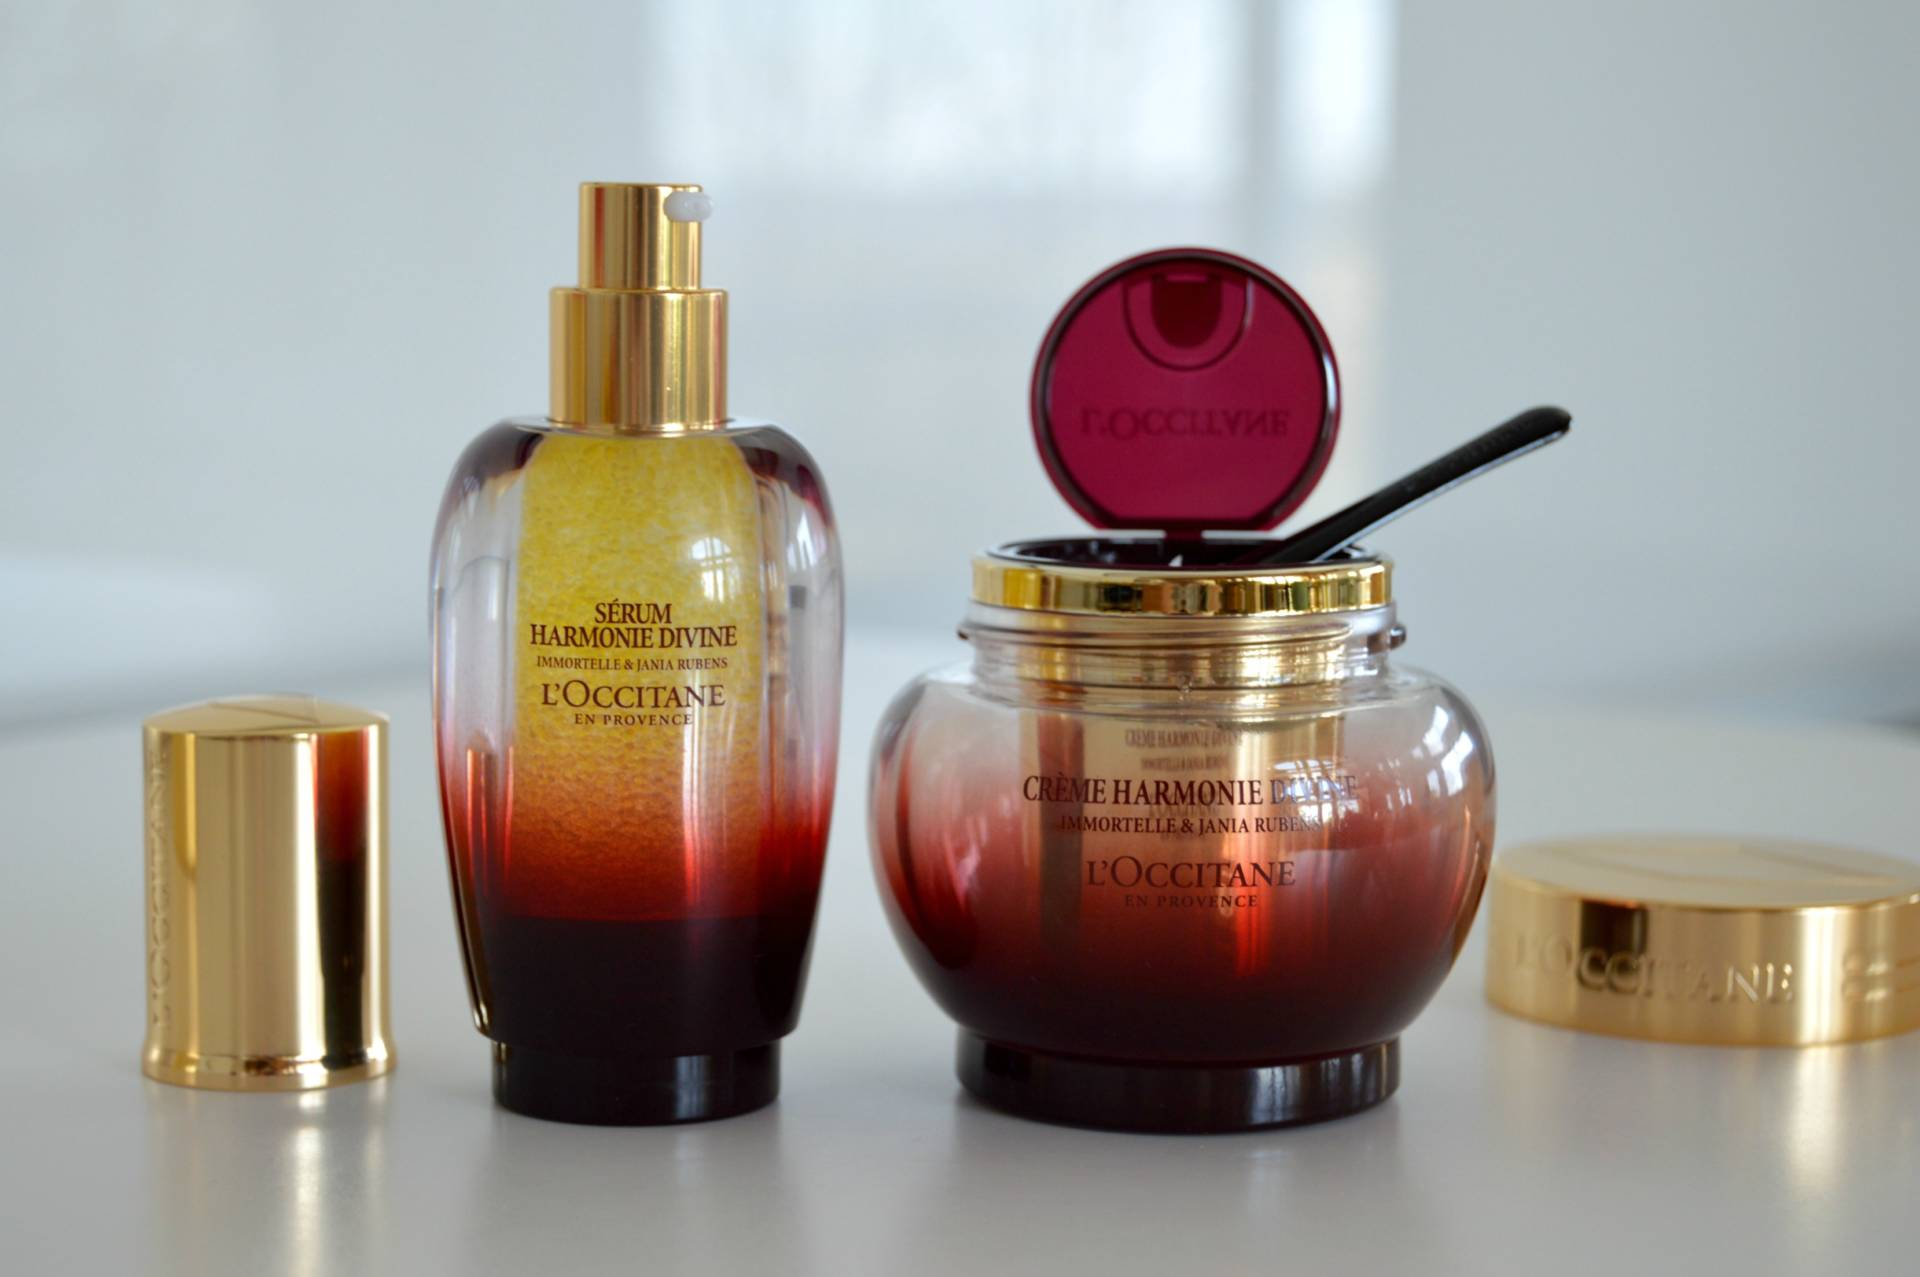 loccitane-harmonie-divine-collection-inhautepursuit-review-luxury-skincare